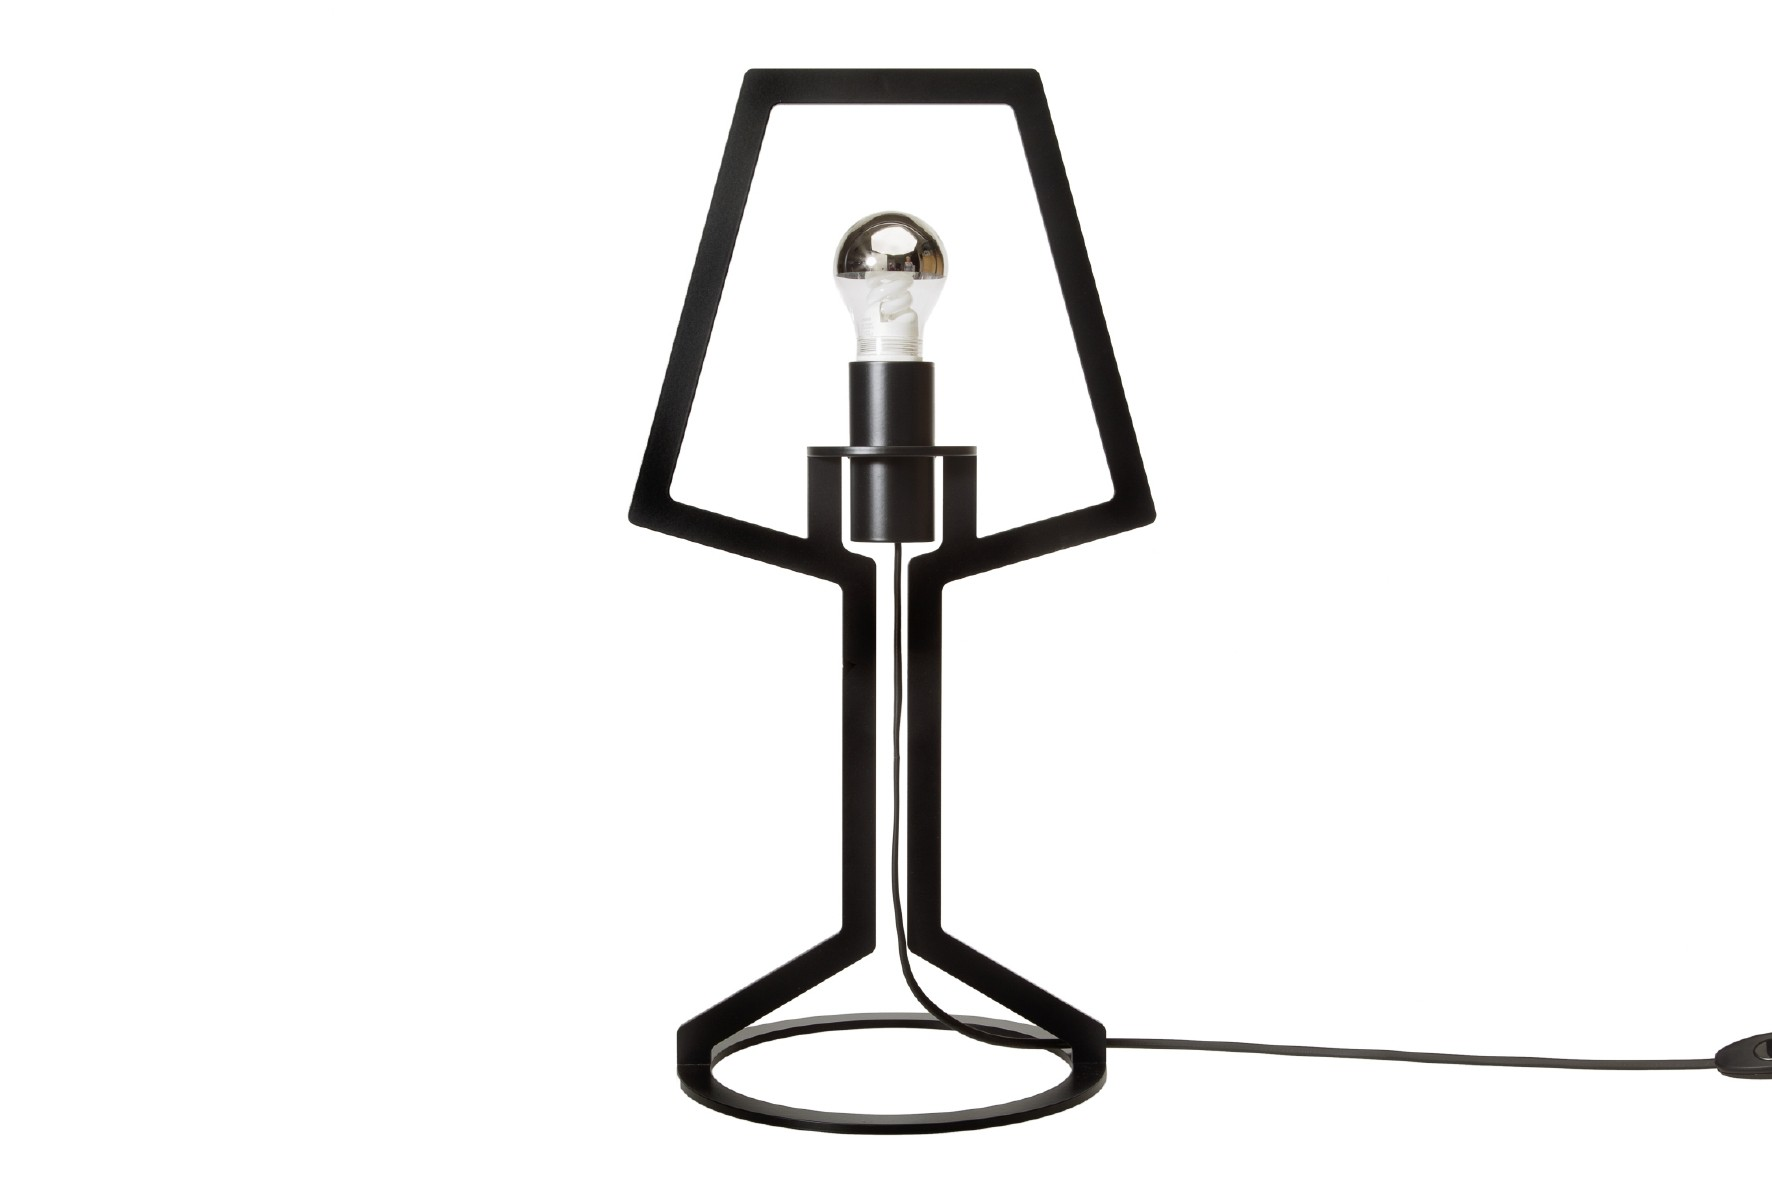 Order The Gispen Outline Table Lamp At Shop Holland